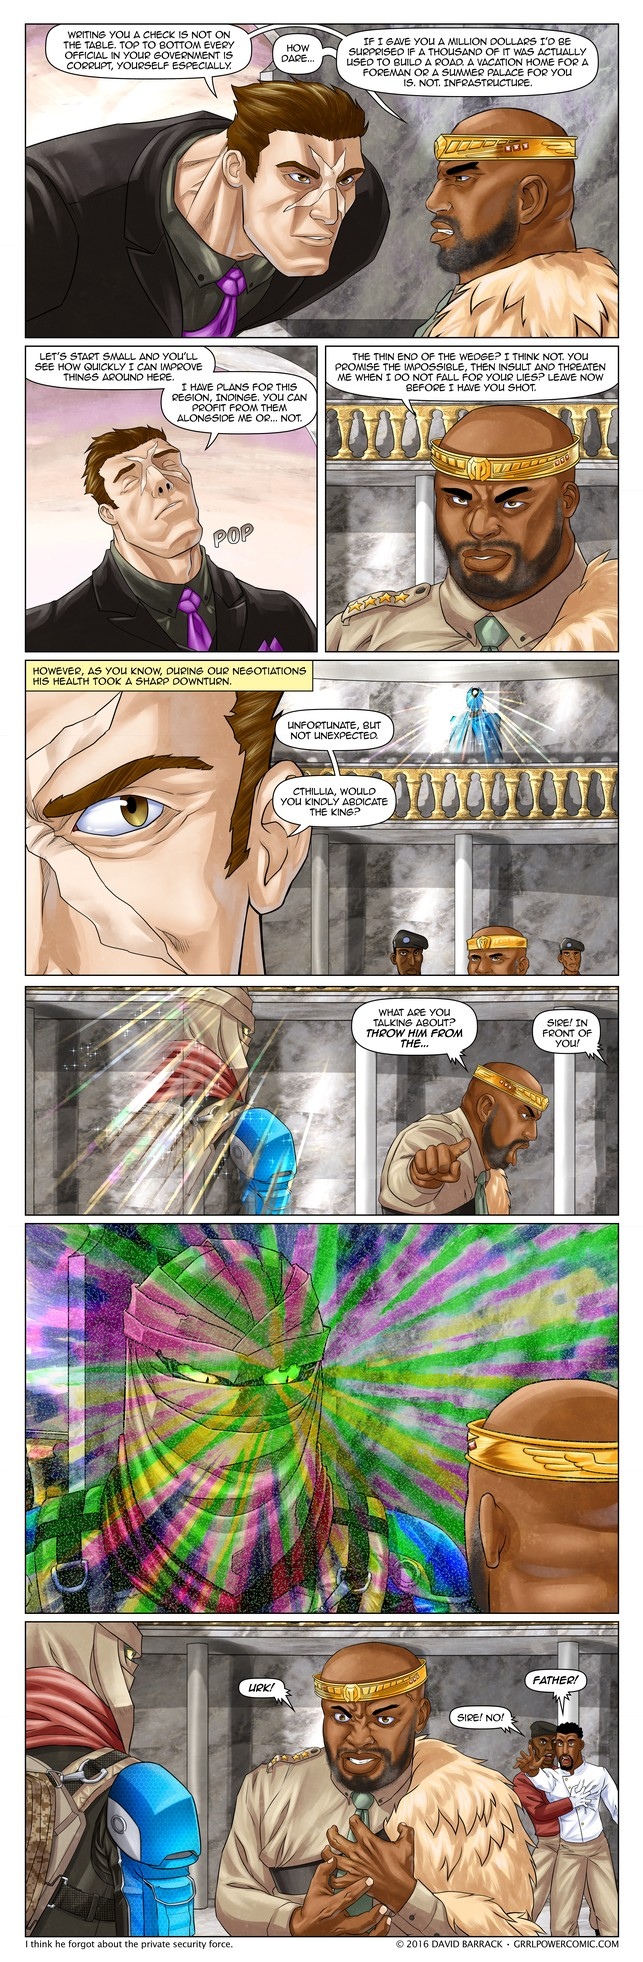 Grrl Power #389 – Interview to a kill